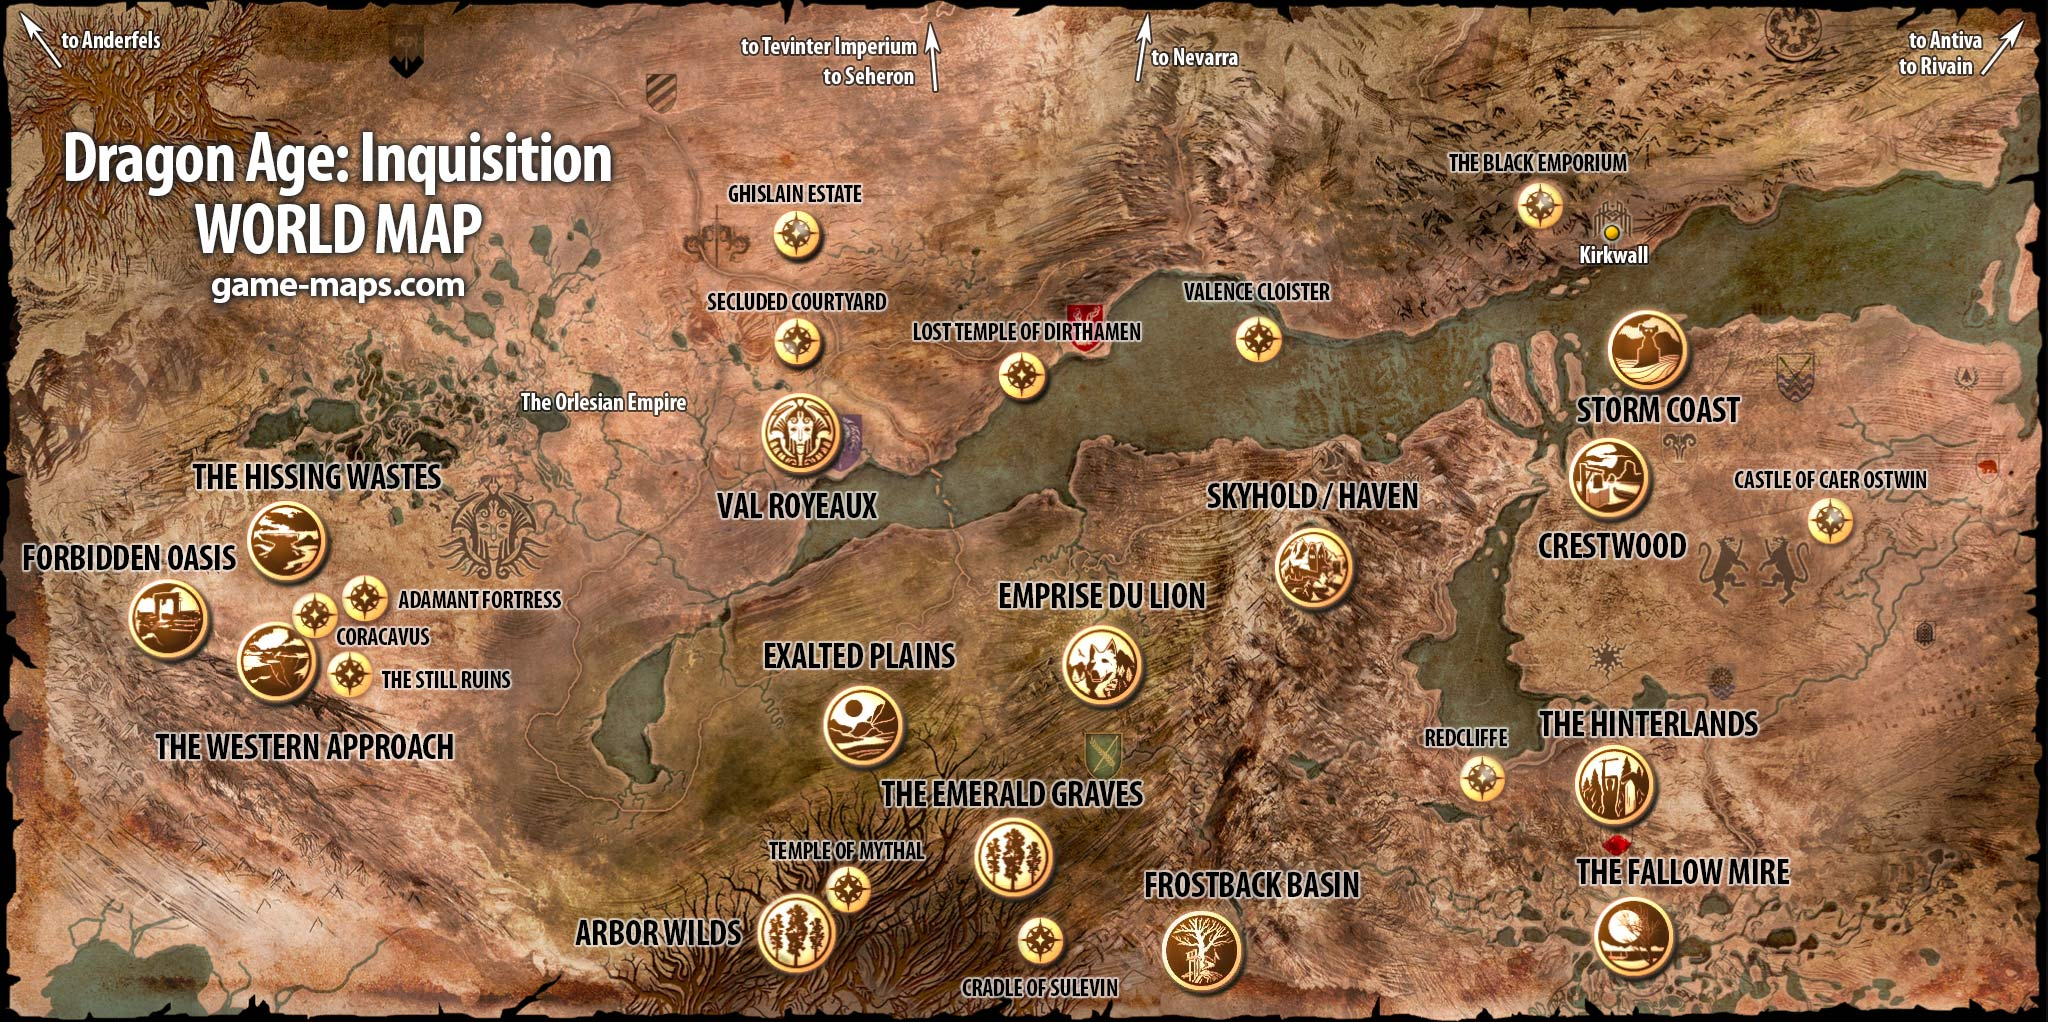 Dragon age inquisition world map game maps dragon age inquisition world map gumiabroncs Images